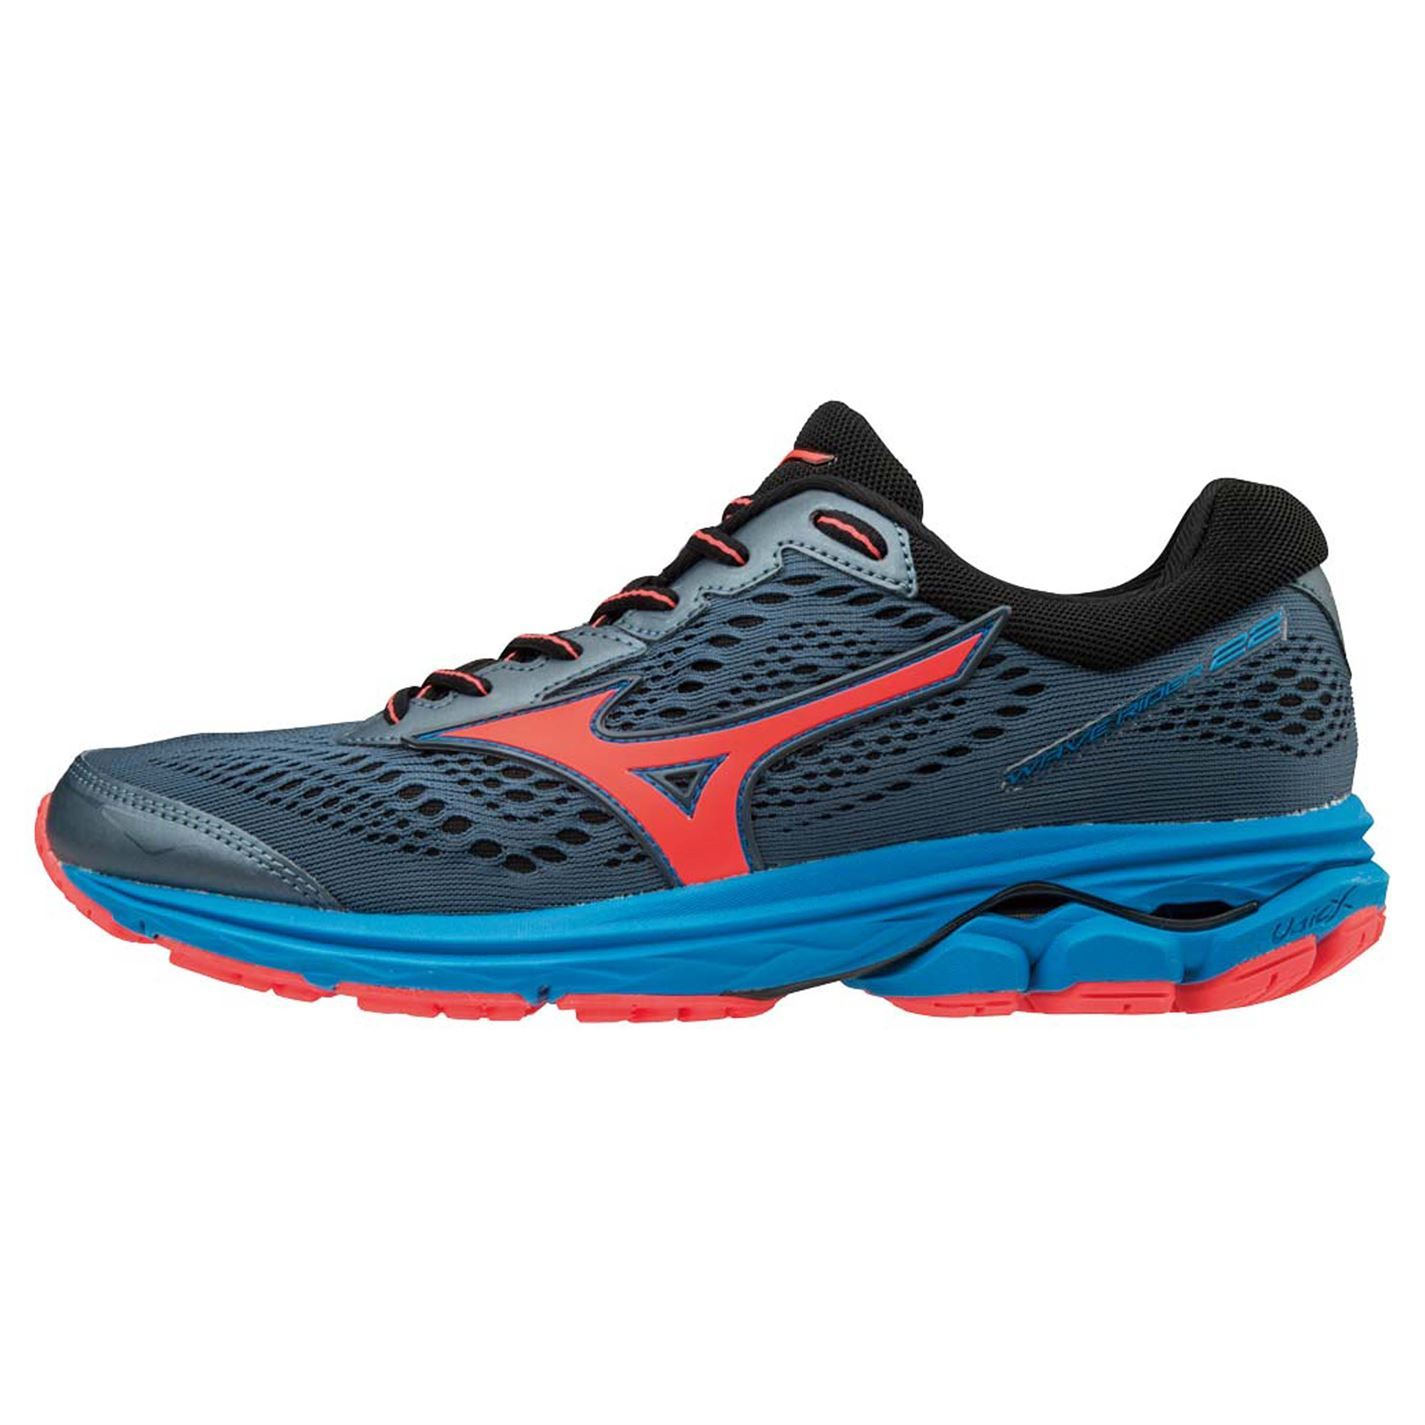 Mizuno Wave Schuhes Rider 22 Running Schuhes Wave Road Damenschuhe bad766